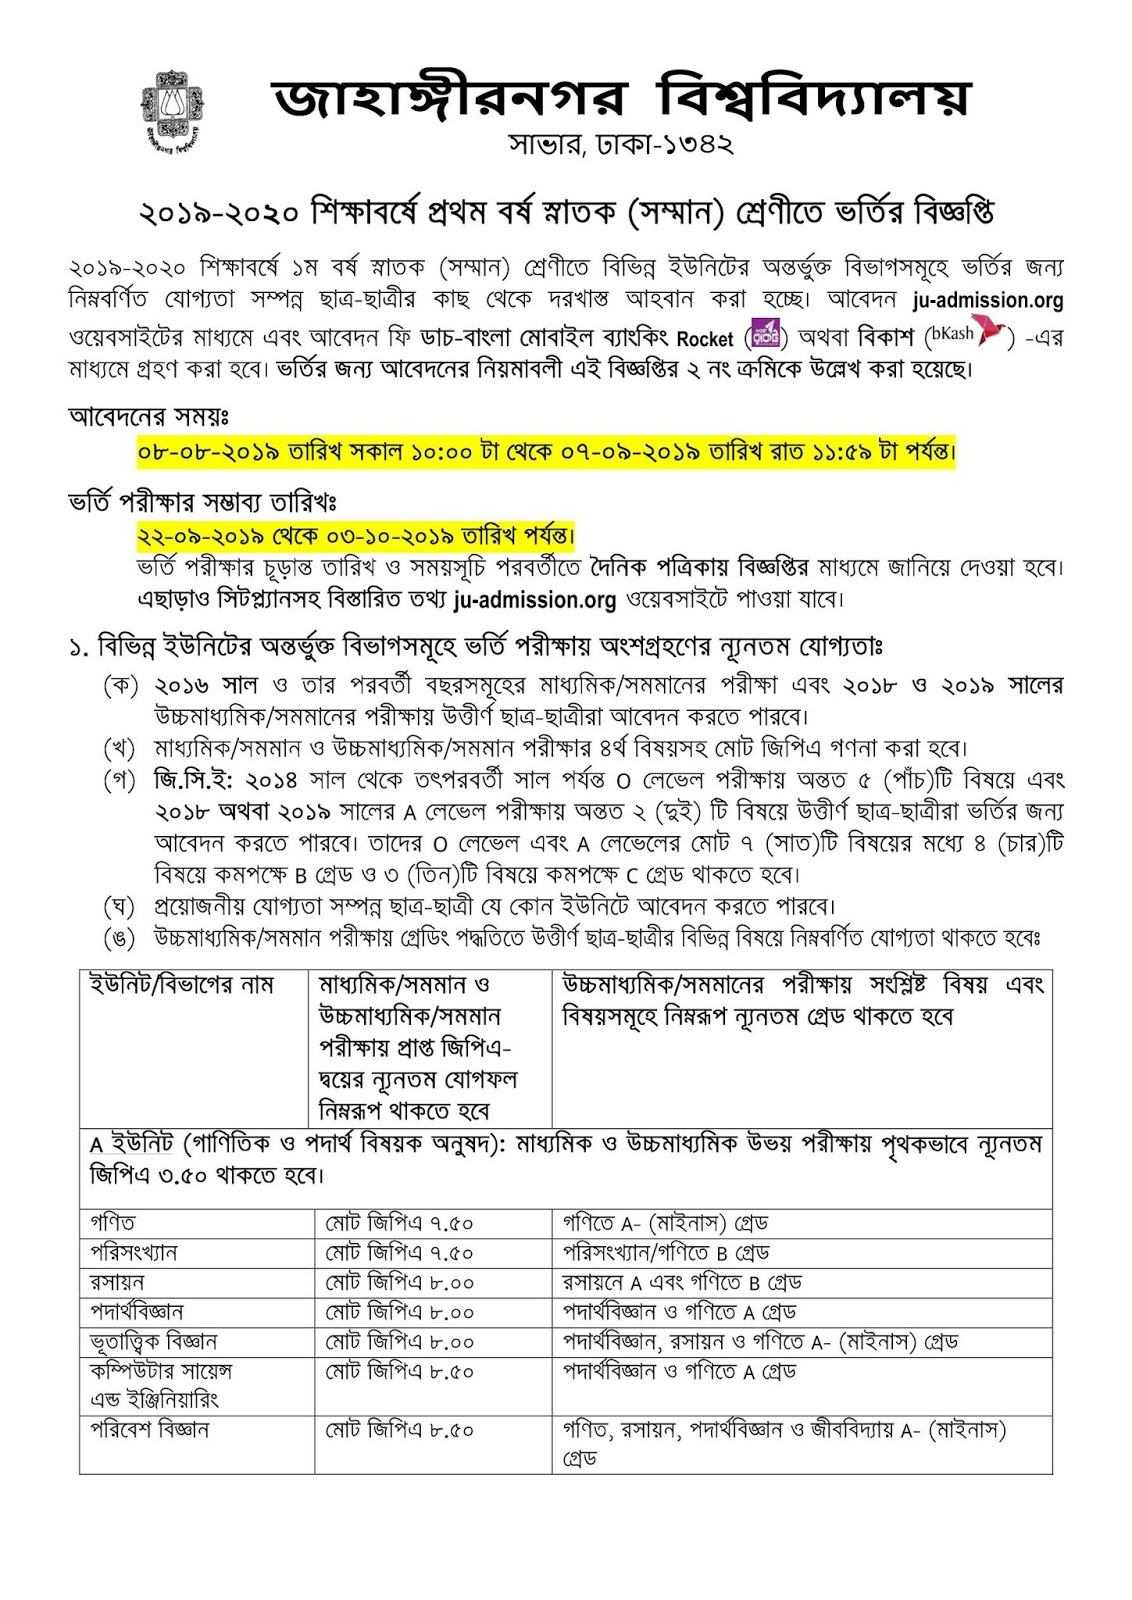 Jahangirnagar University Admission Notice 2019-20